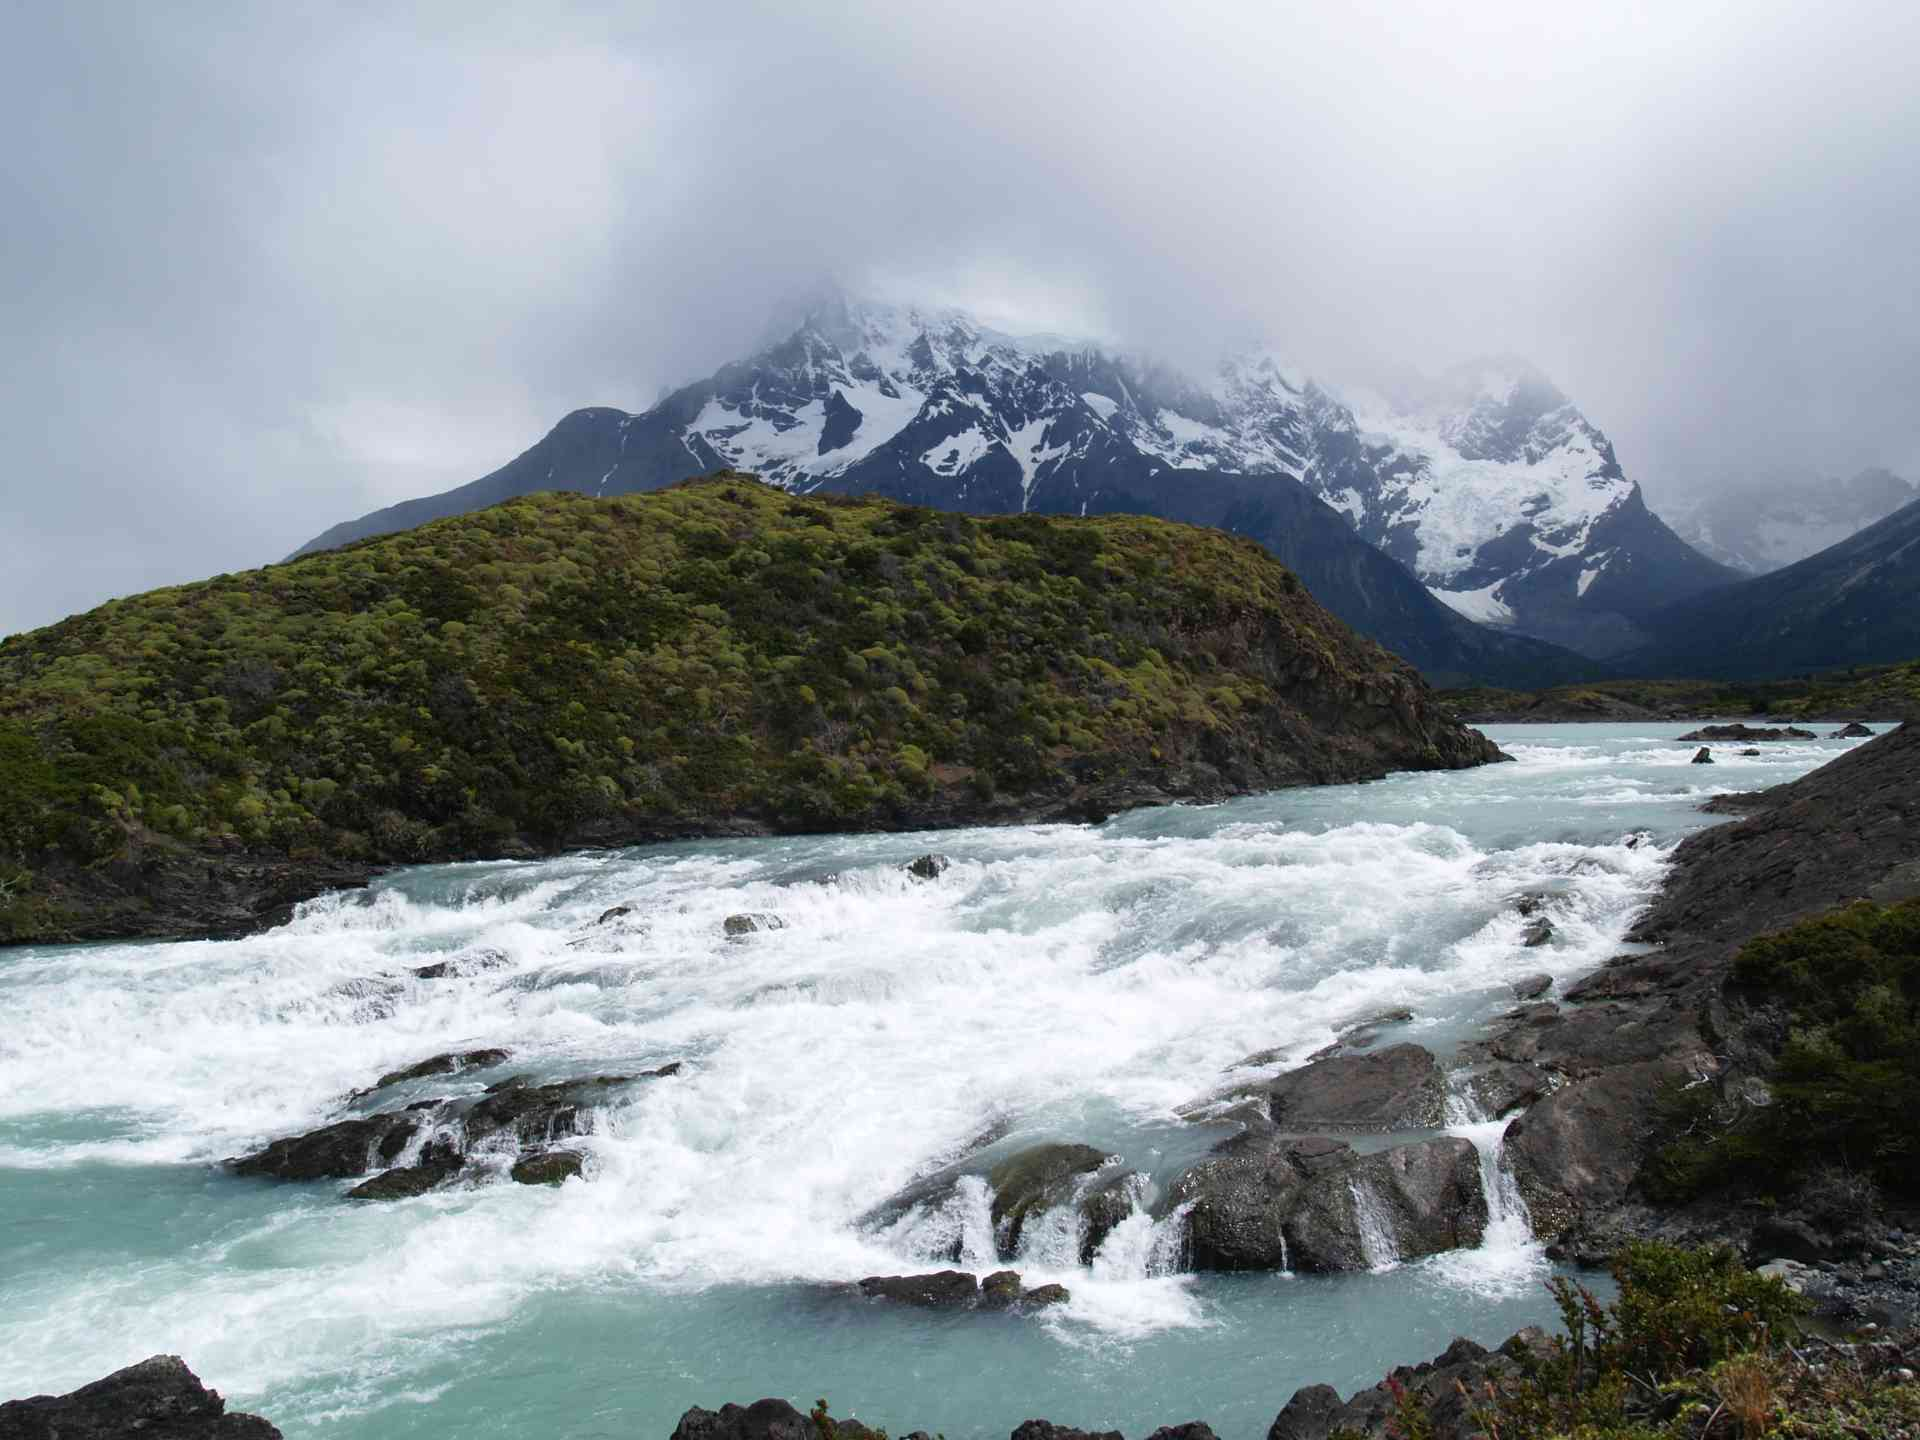 Rapids of Torres del Paine, Chile by Annelieke Huijgens